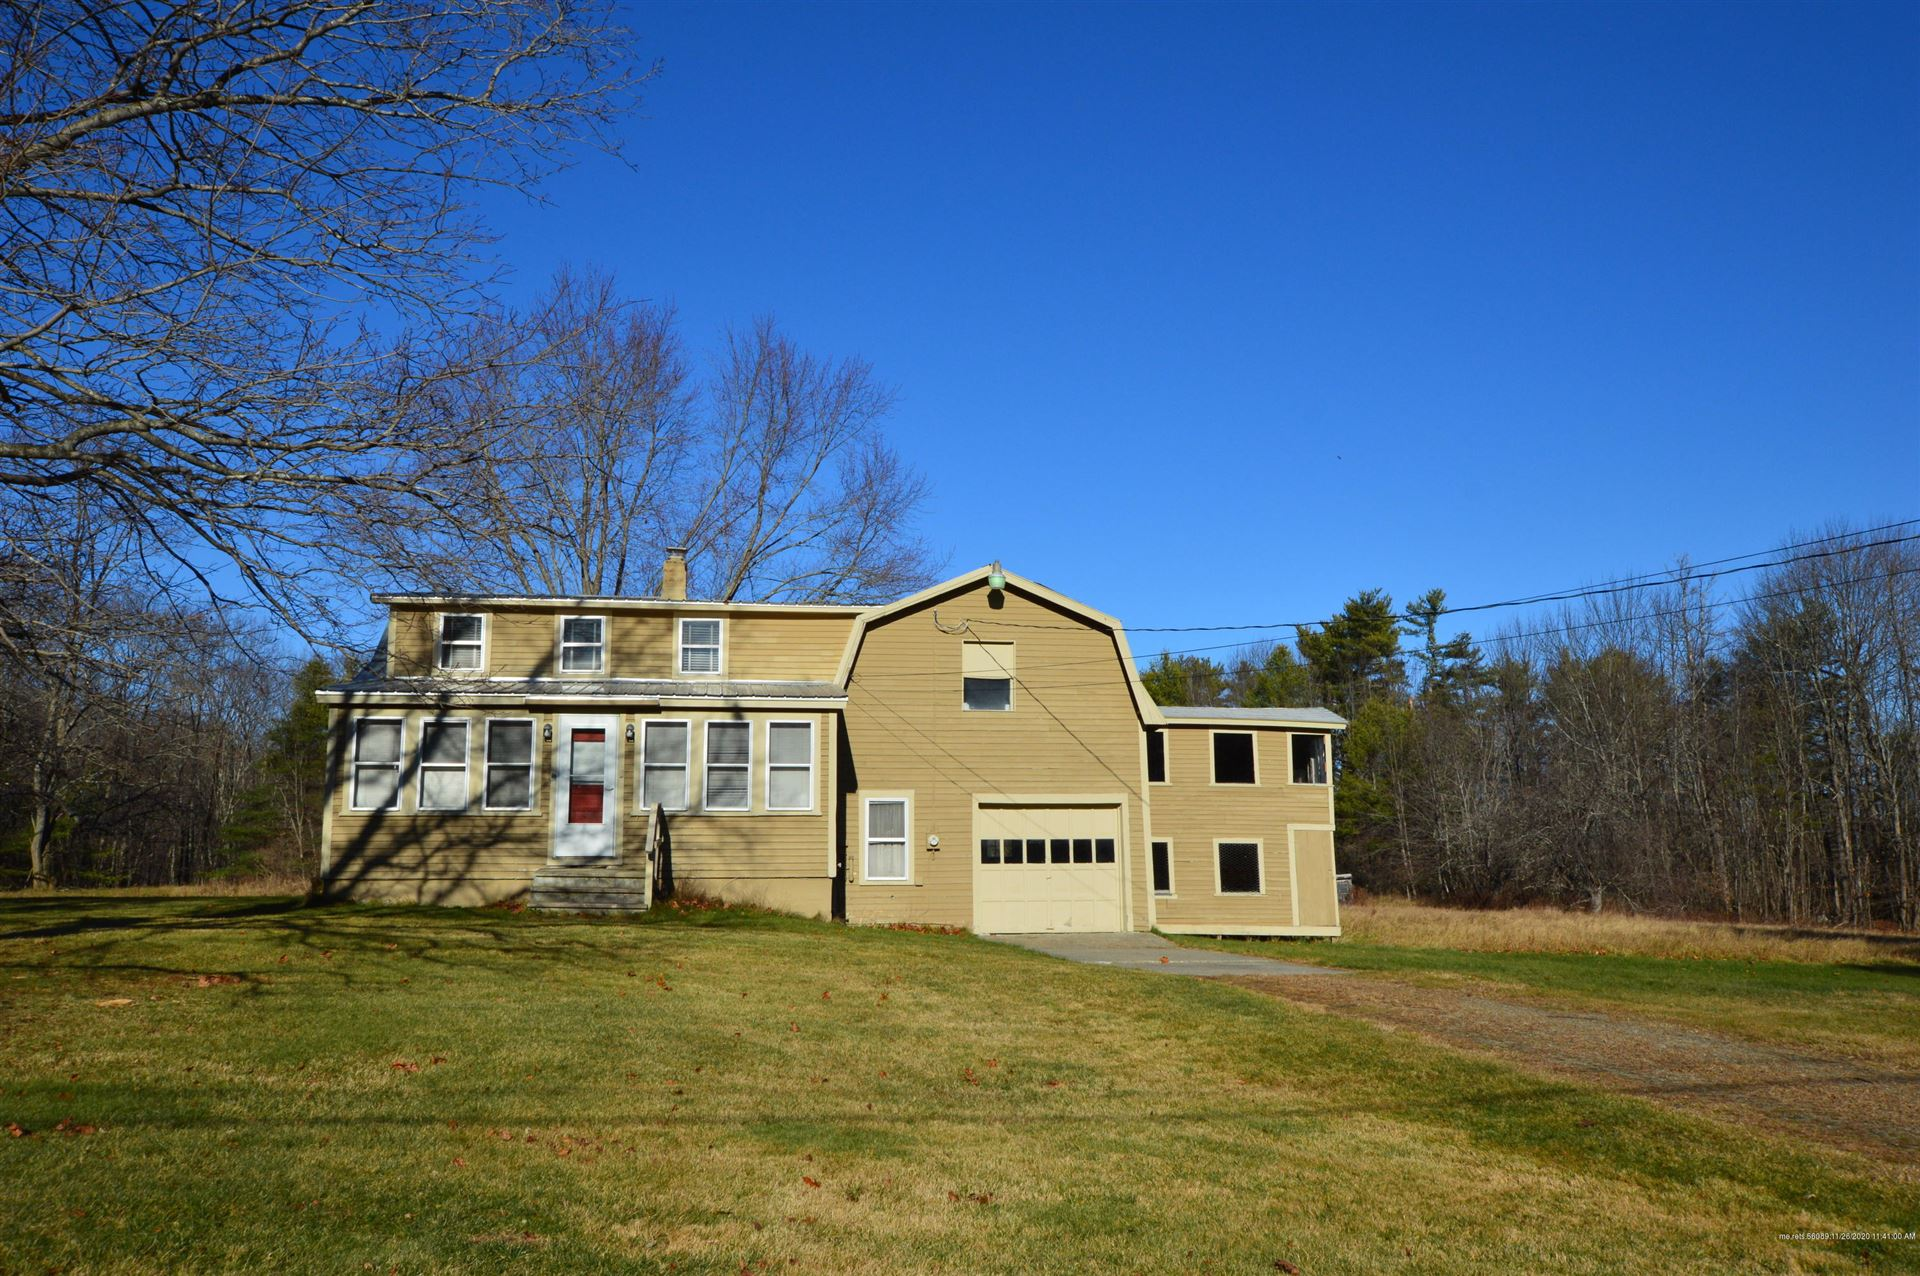 Photo of 298 Wiley Road, Greene, ME 04236 (MLS # 1476898)